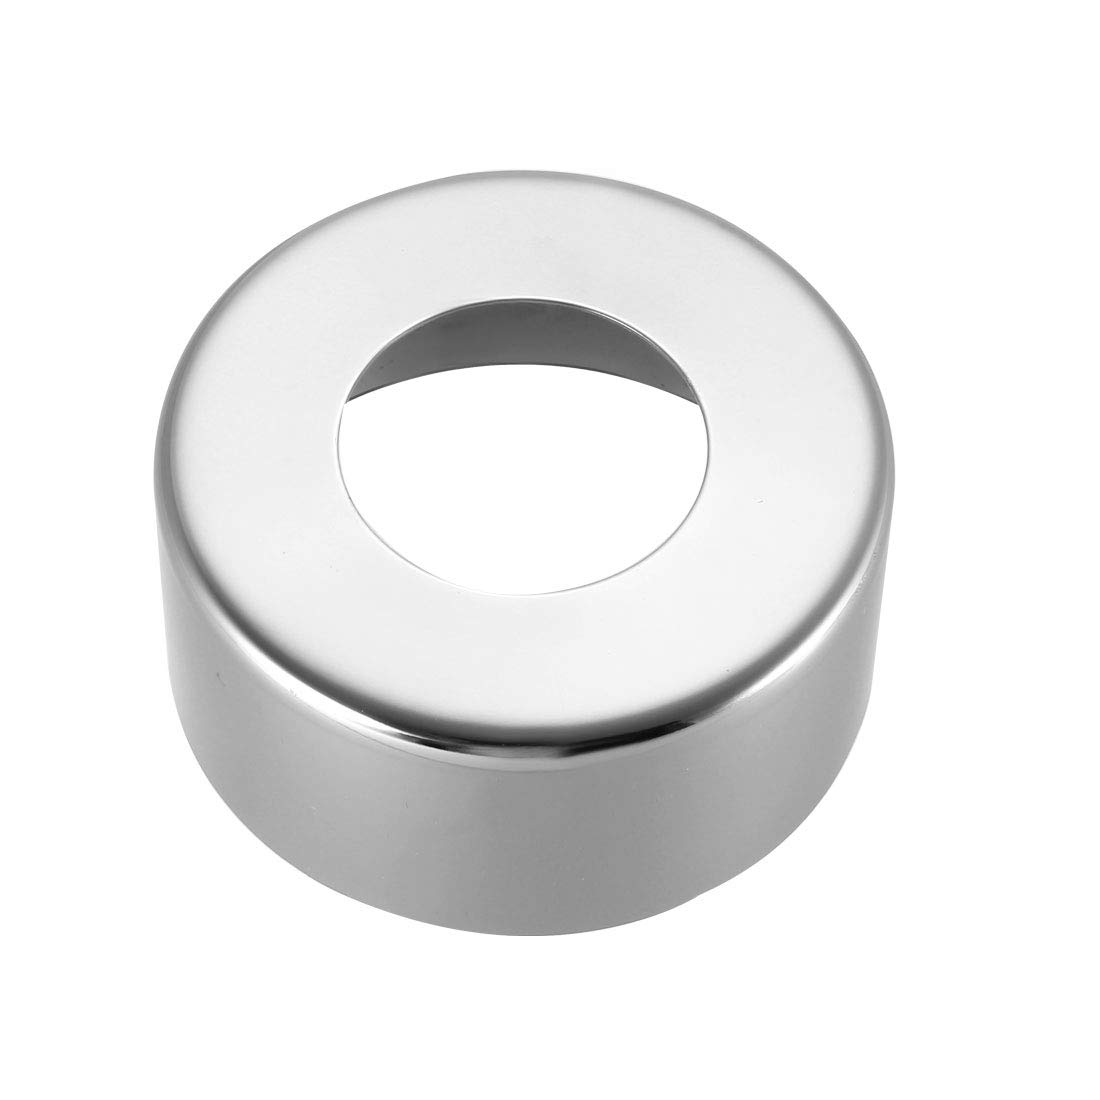 sourcing map Round Escutcheon Plate 60x25mm Stainless Steel Polishing for 33mm Diameter Pipe